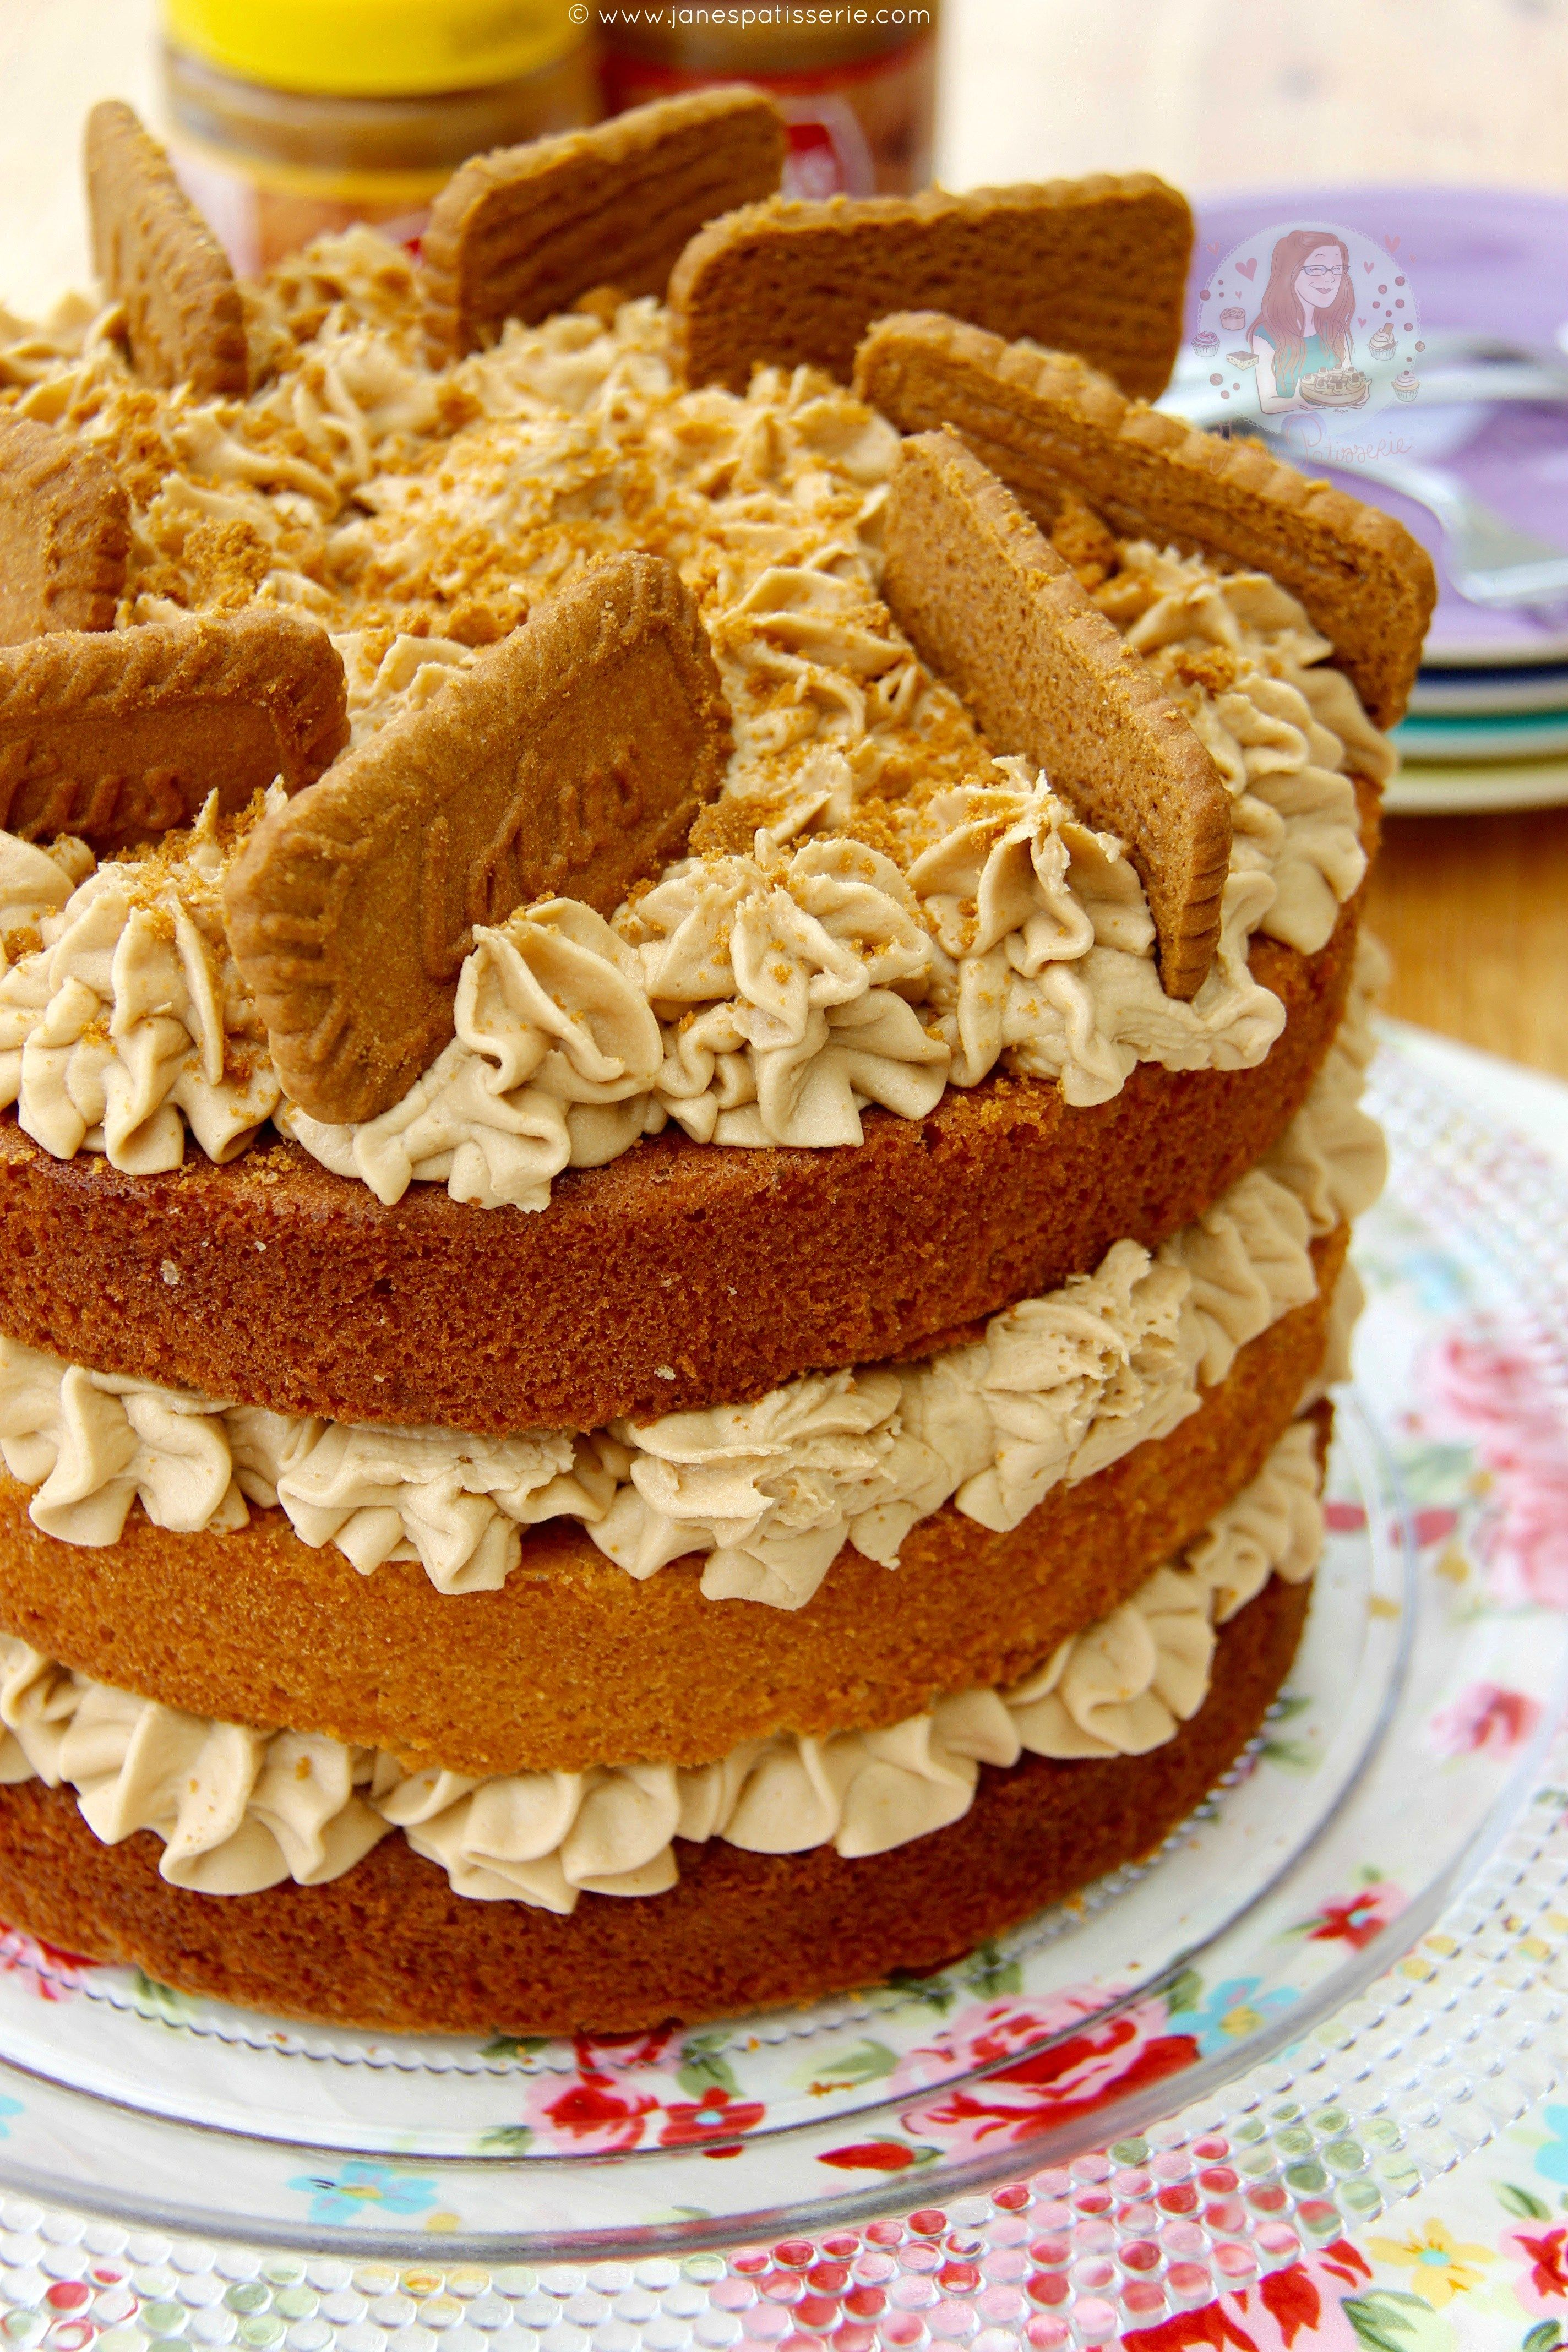 Caramel biscuit cake recipe